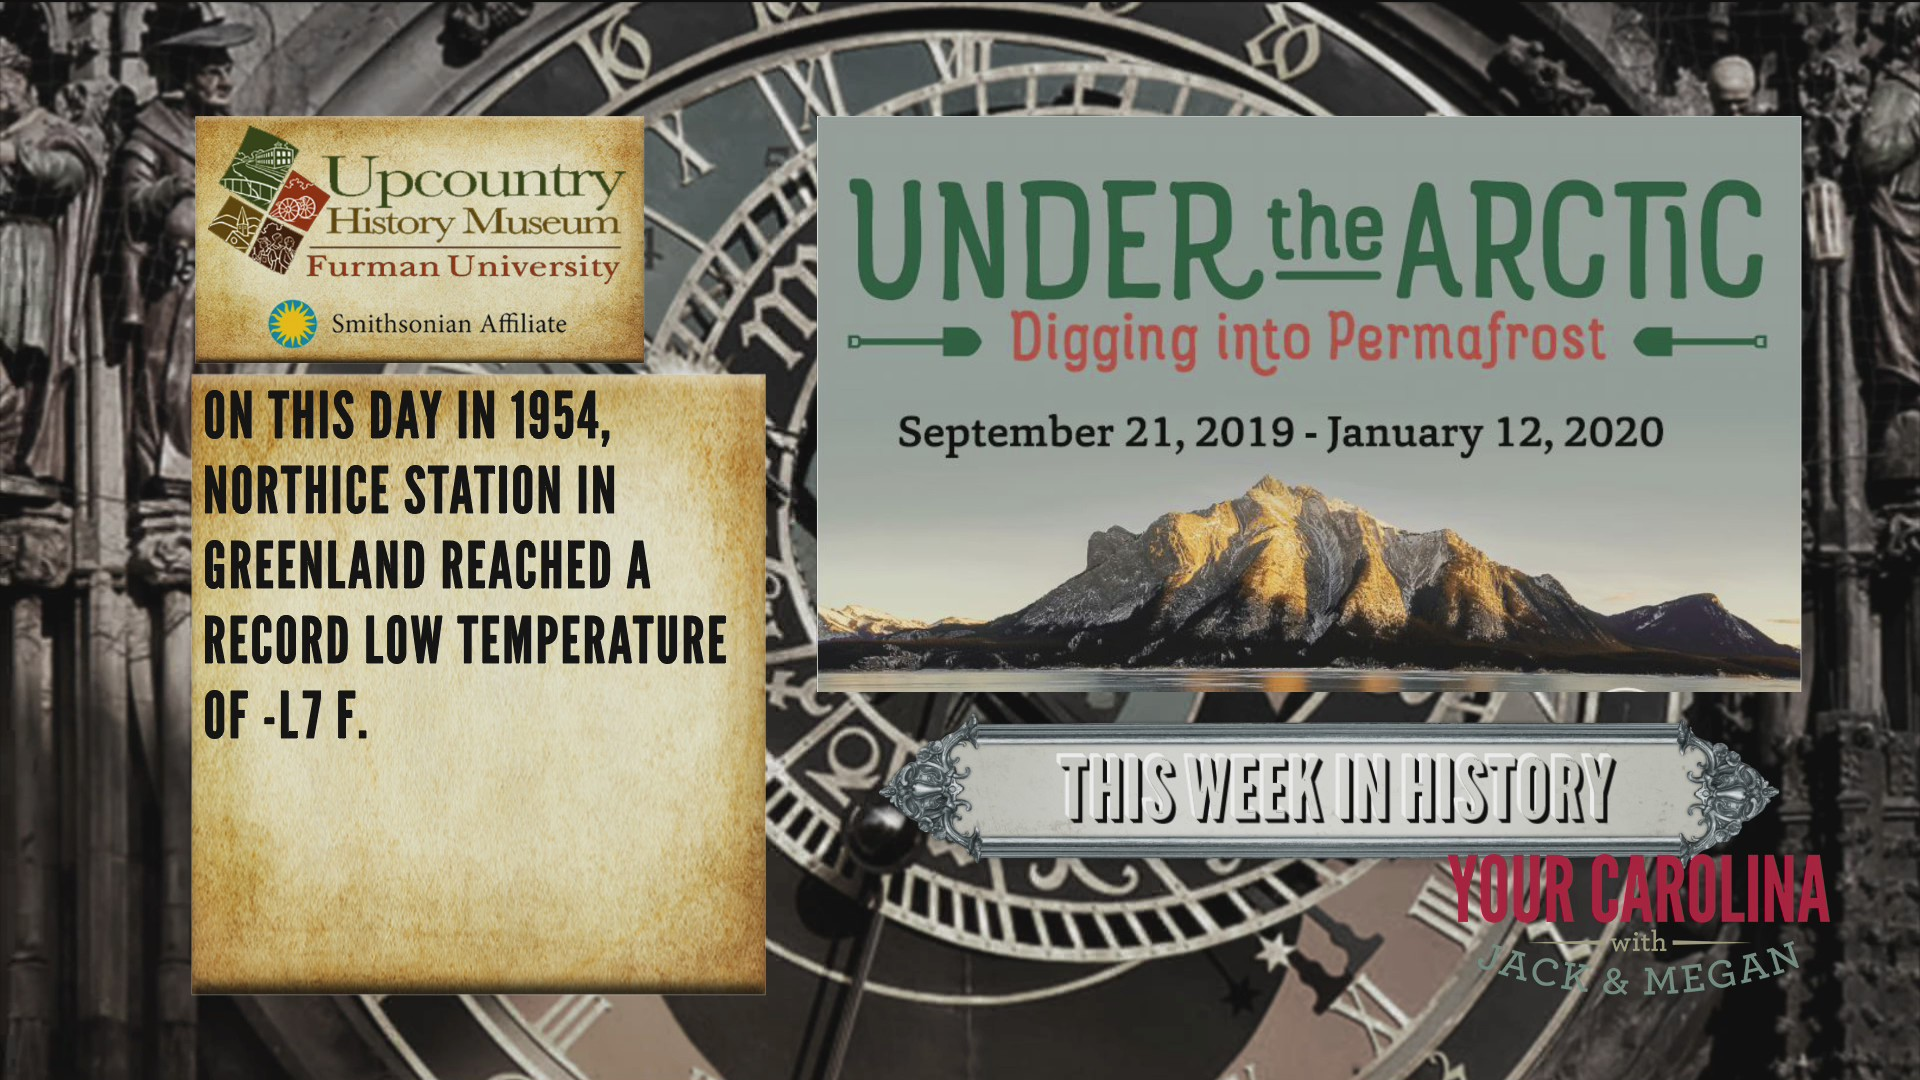 This Week In History - Greenland Reached Record Low